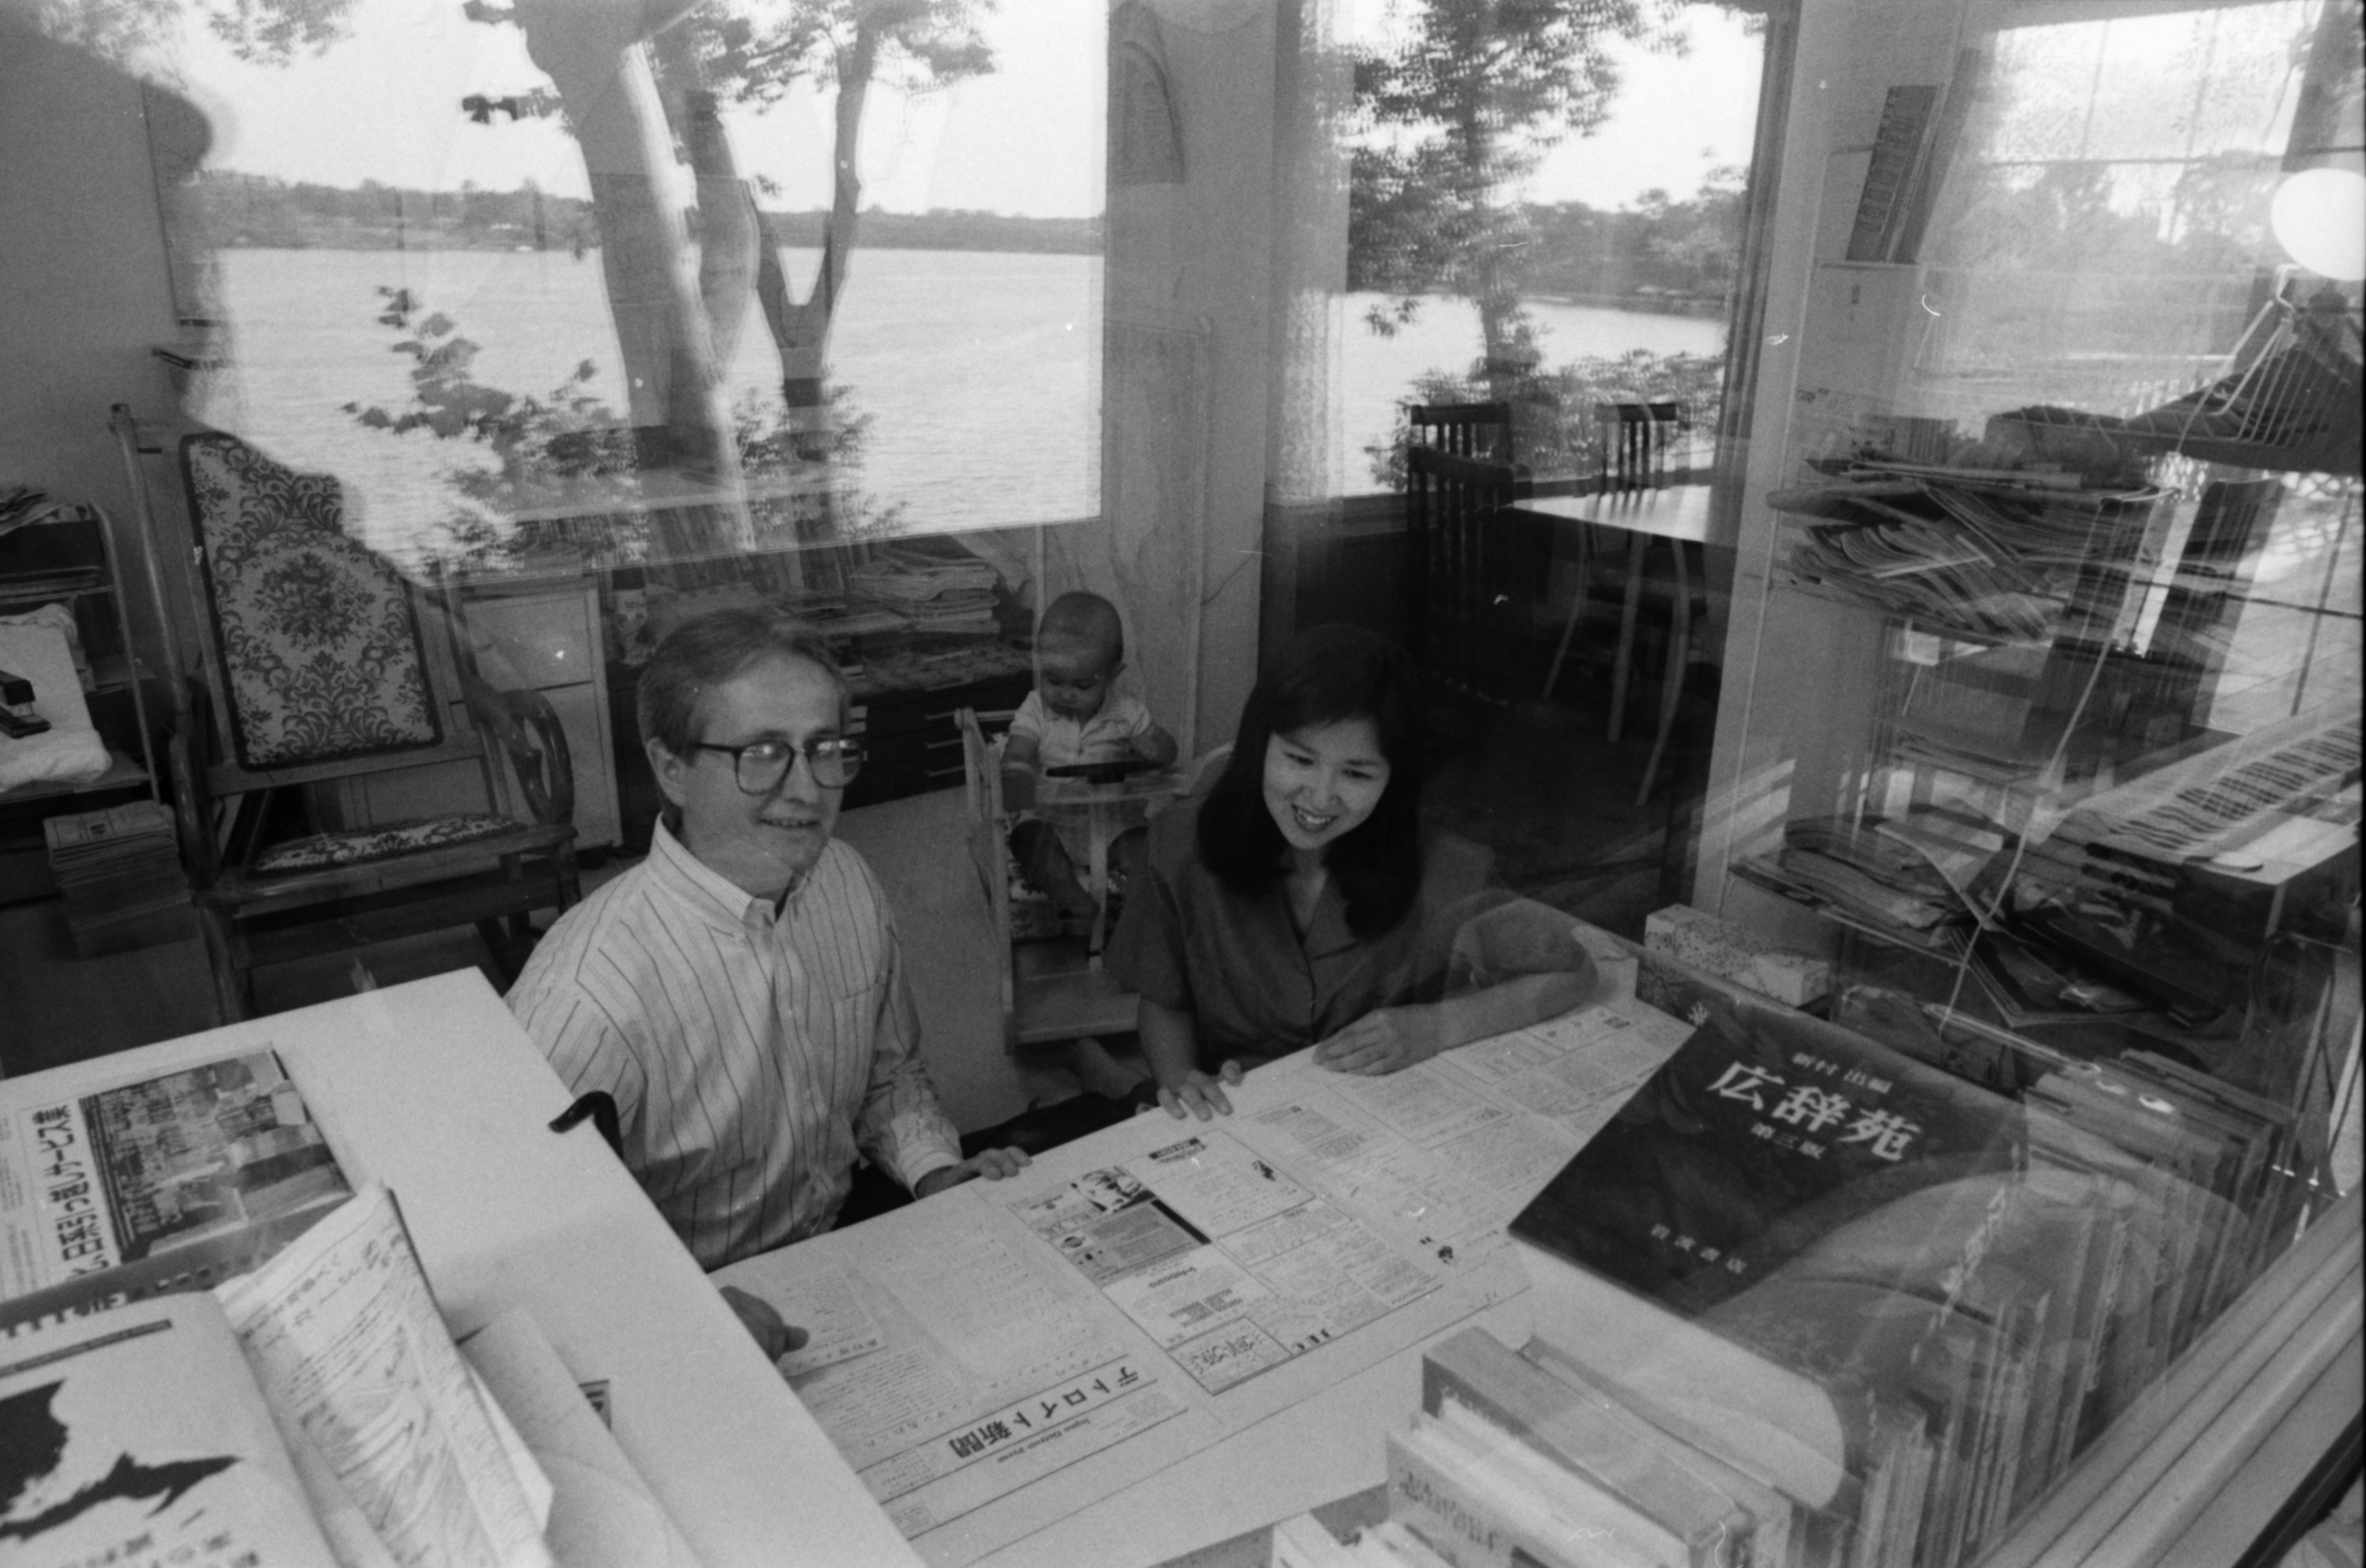 Miyuki O. Mascot and her husband, J. David, work on the Japan Detroit Press, July 1991 image